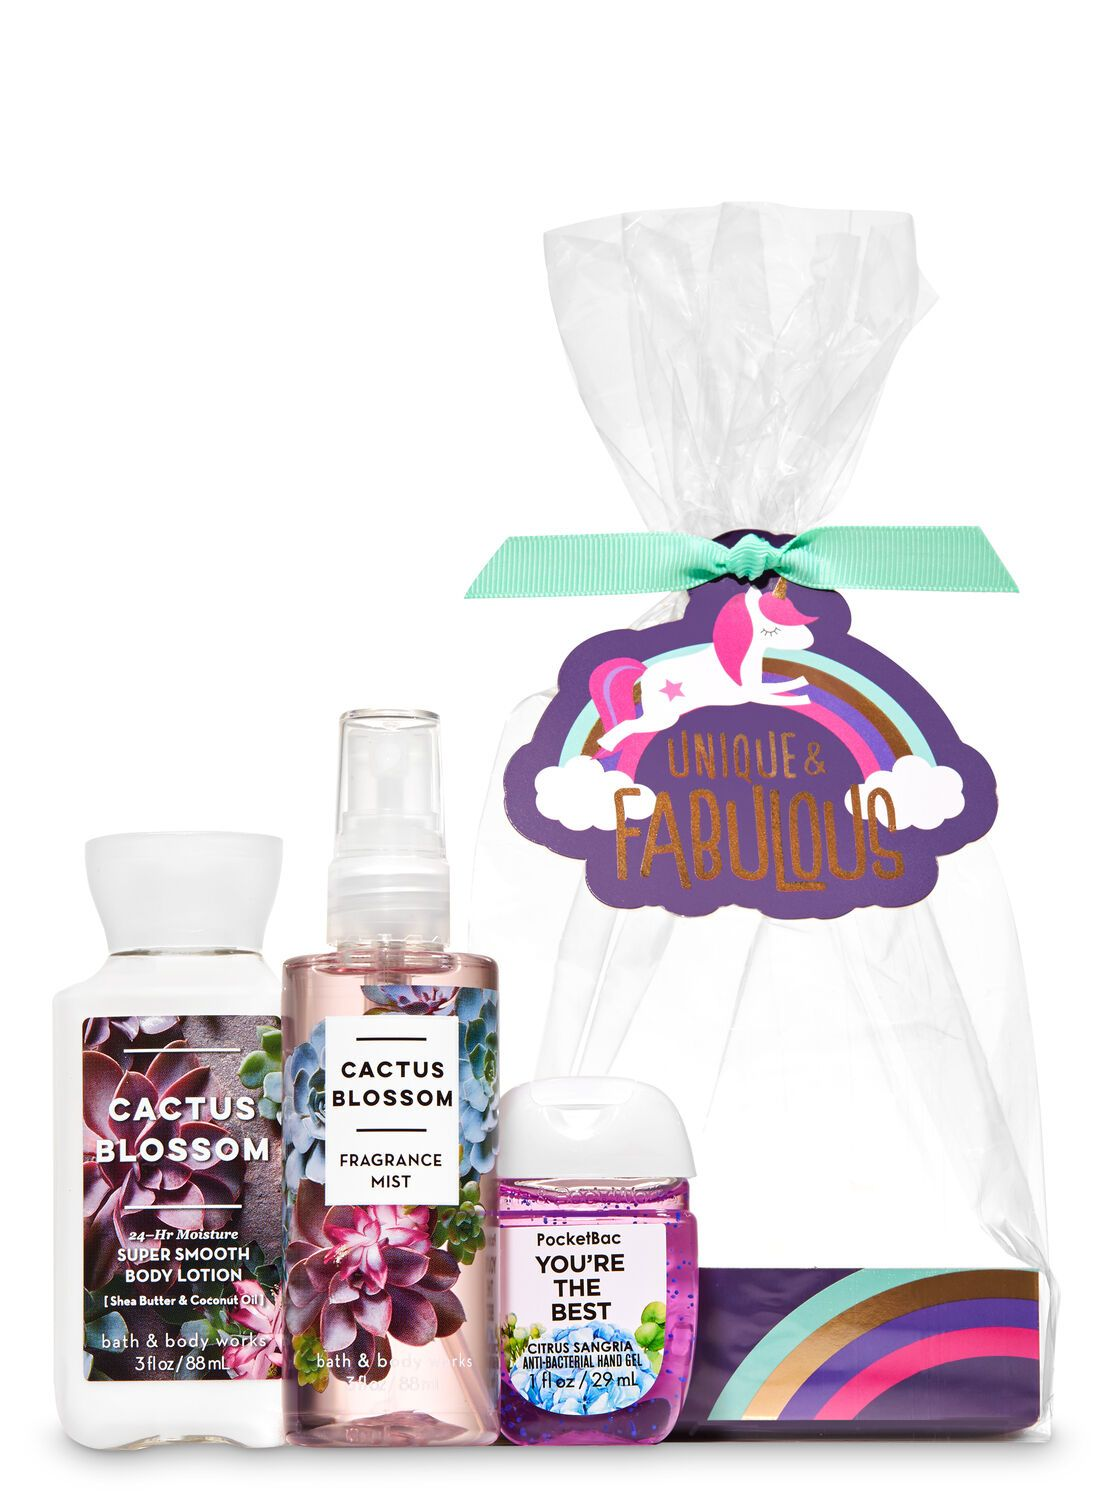 Bath Body Works Cactus Blossom Unique Fabulous Mini Gift Set